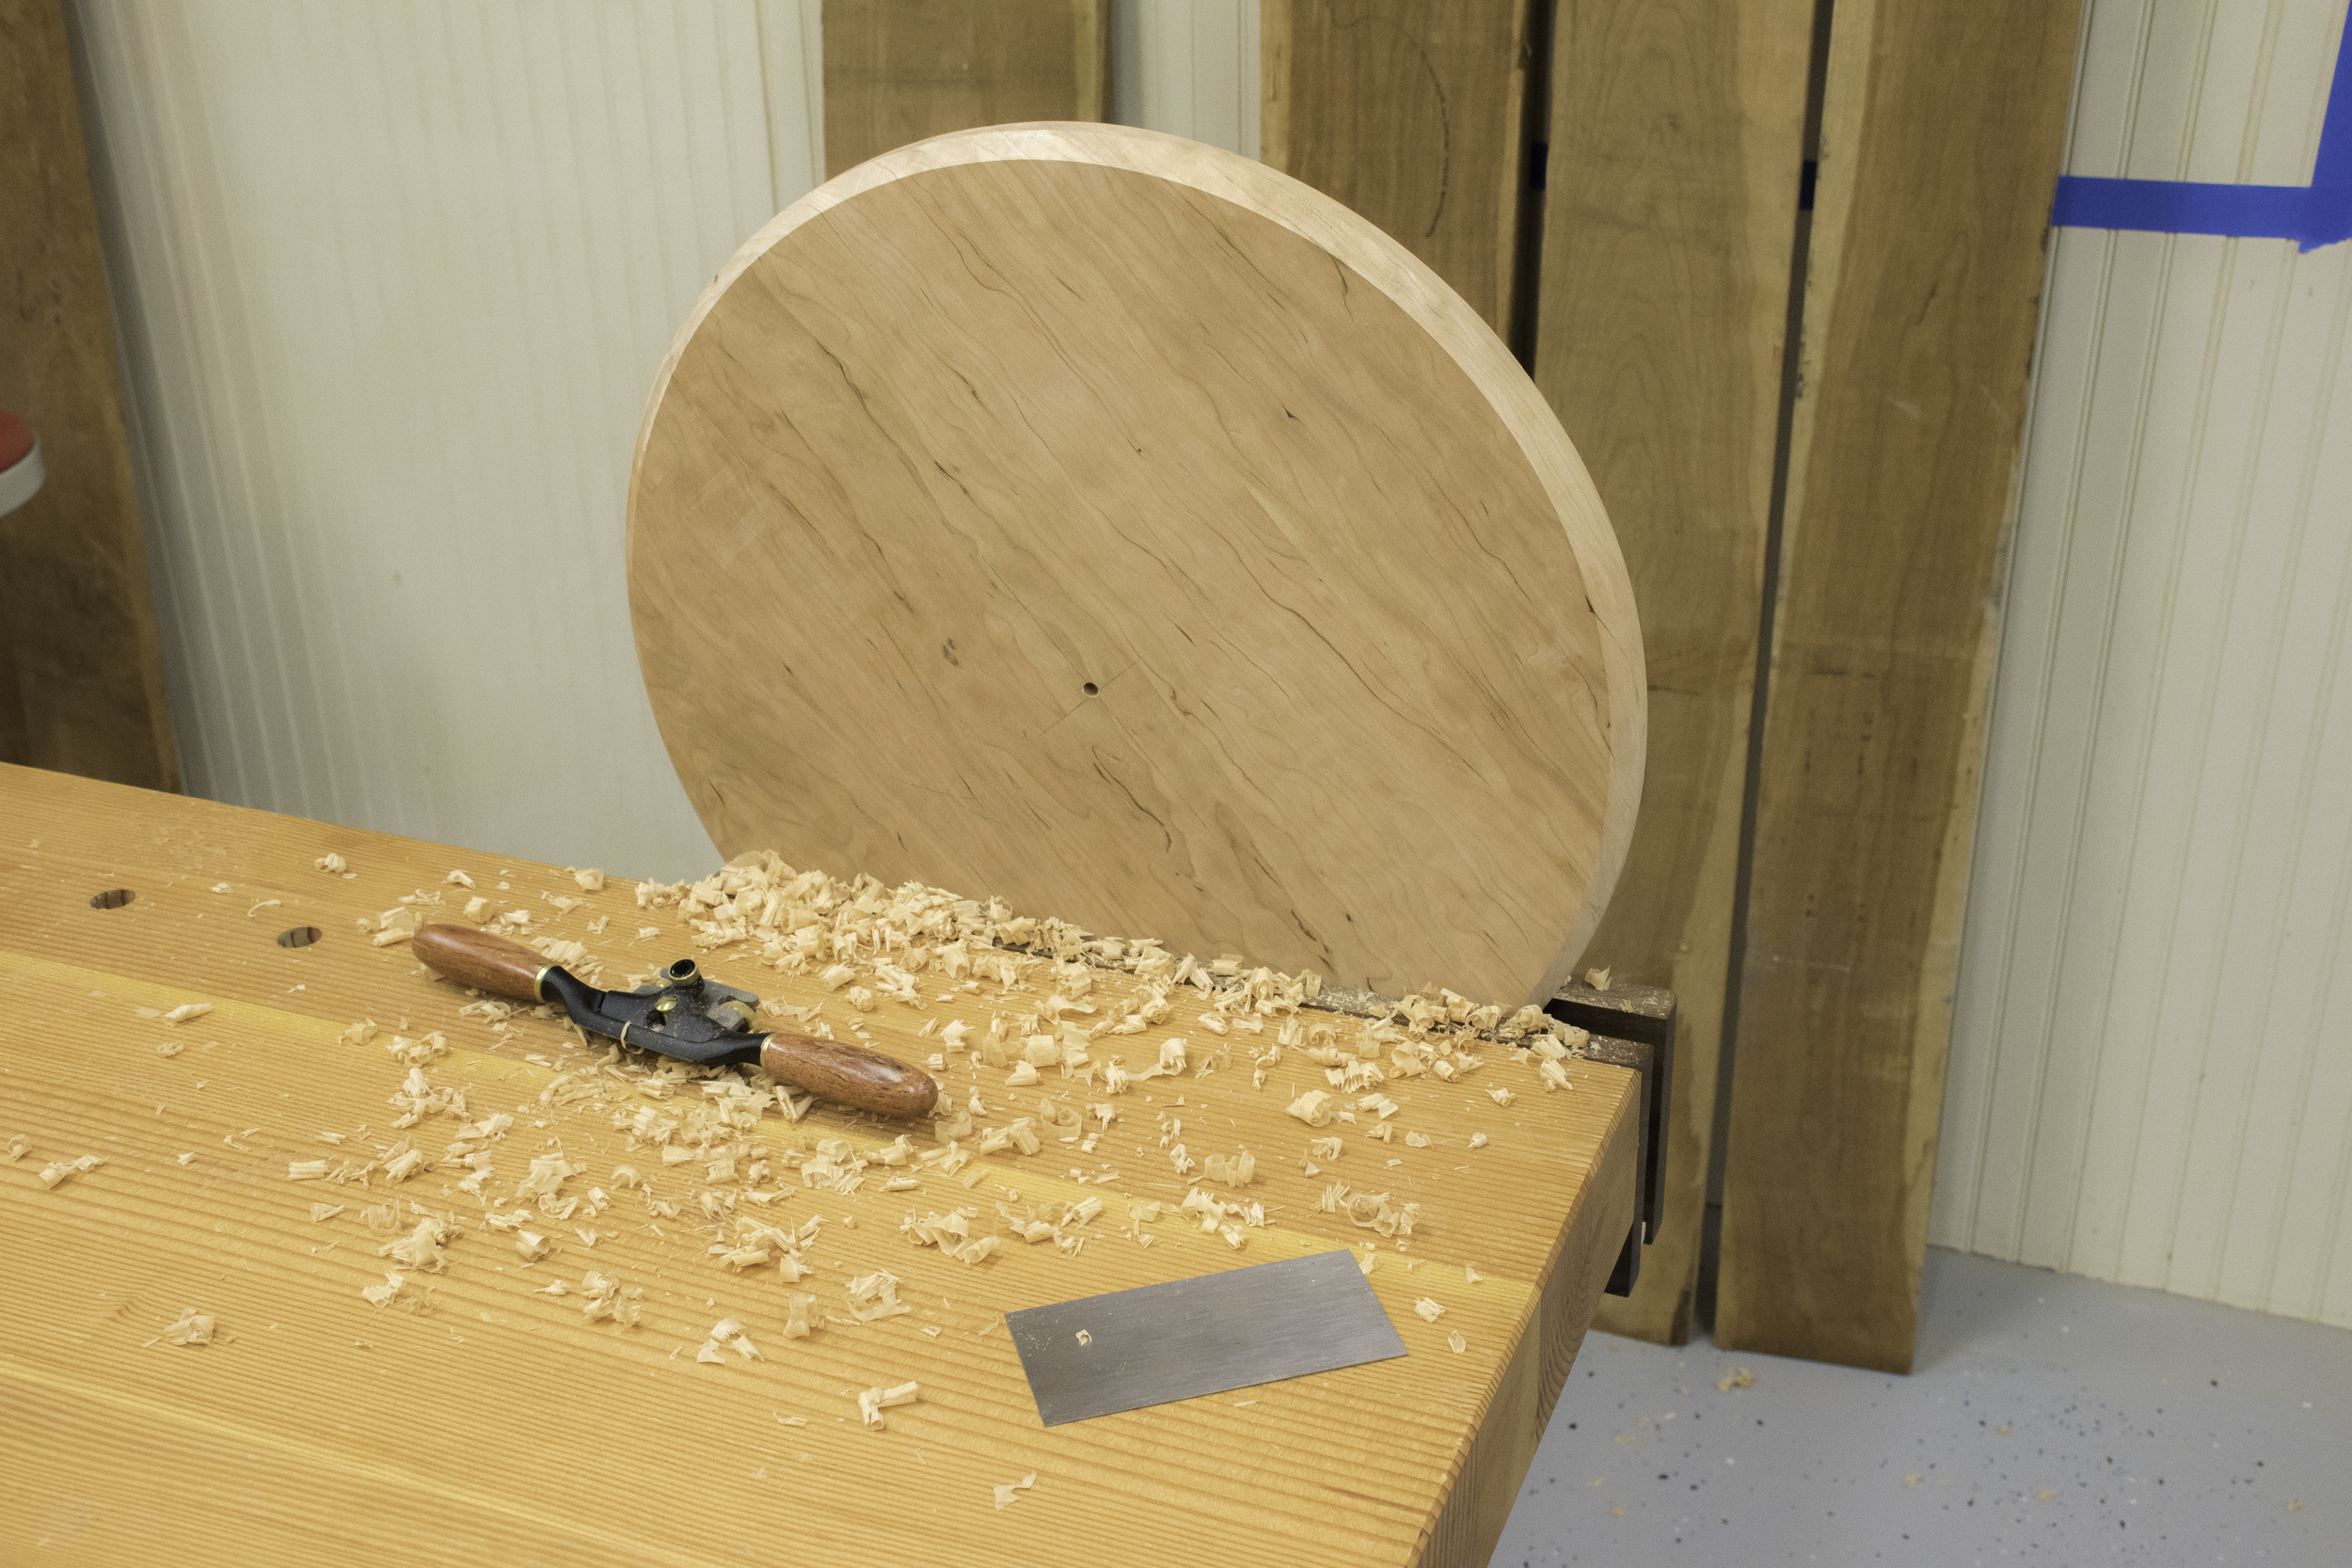 Cleaning up the edge of the circle after using the router circle jig.